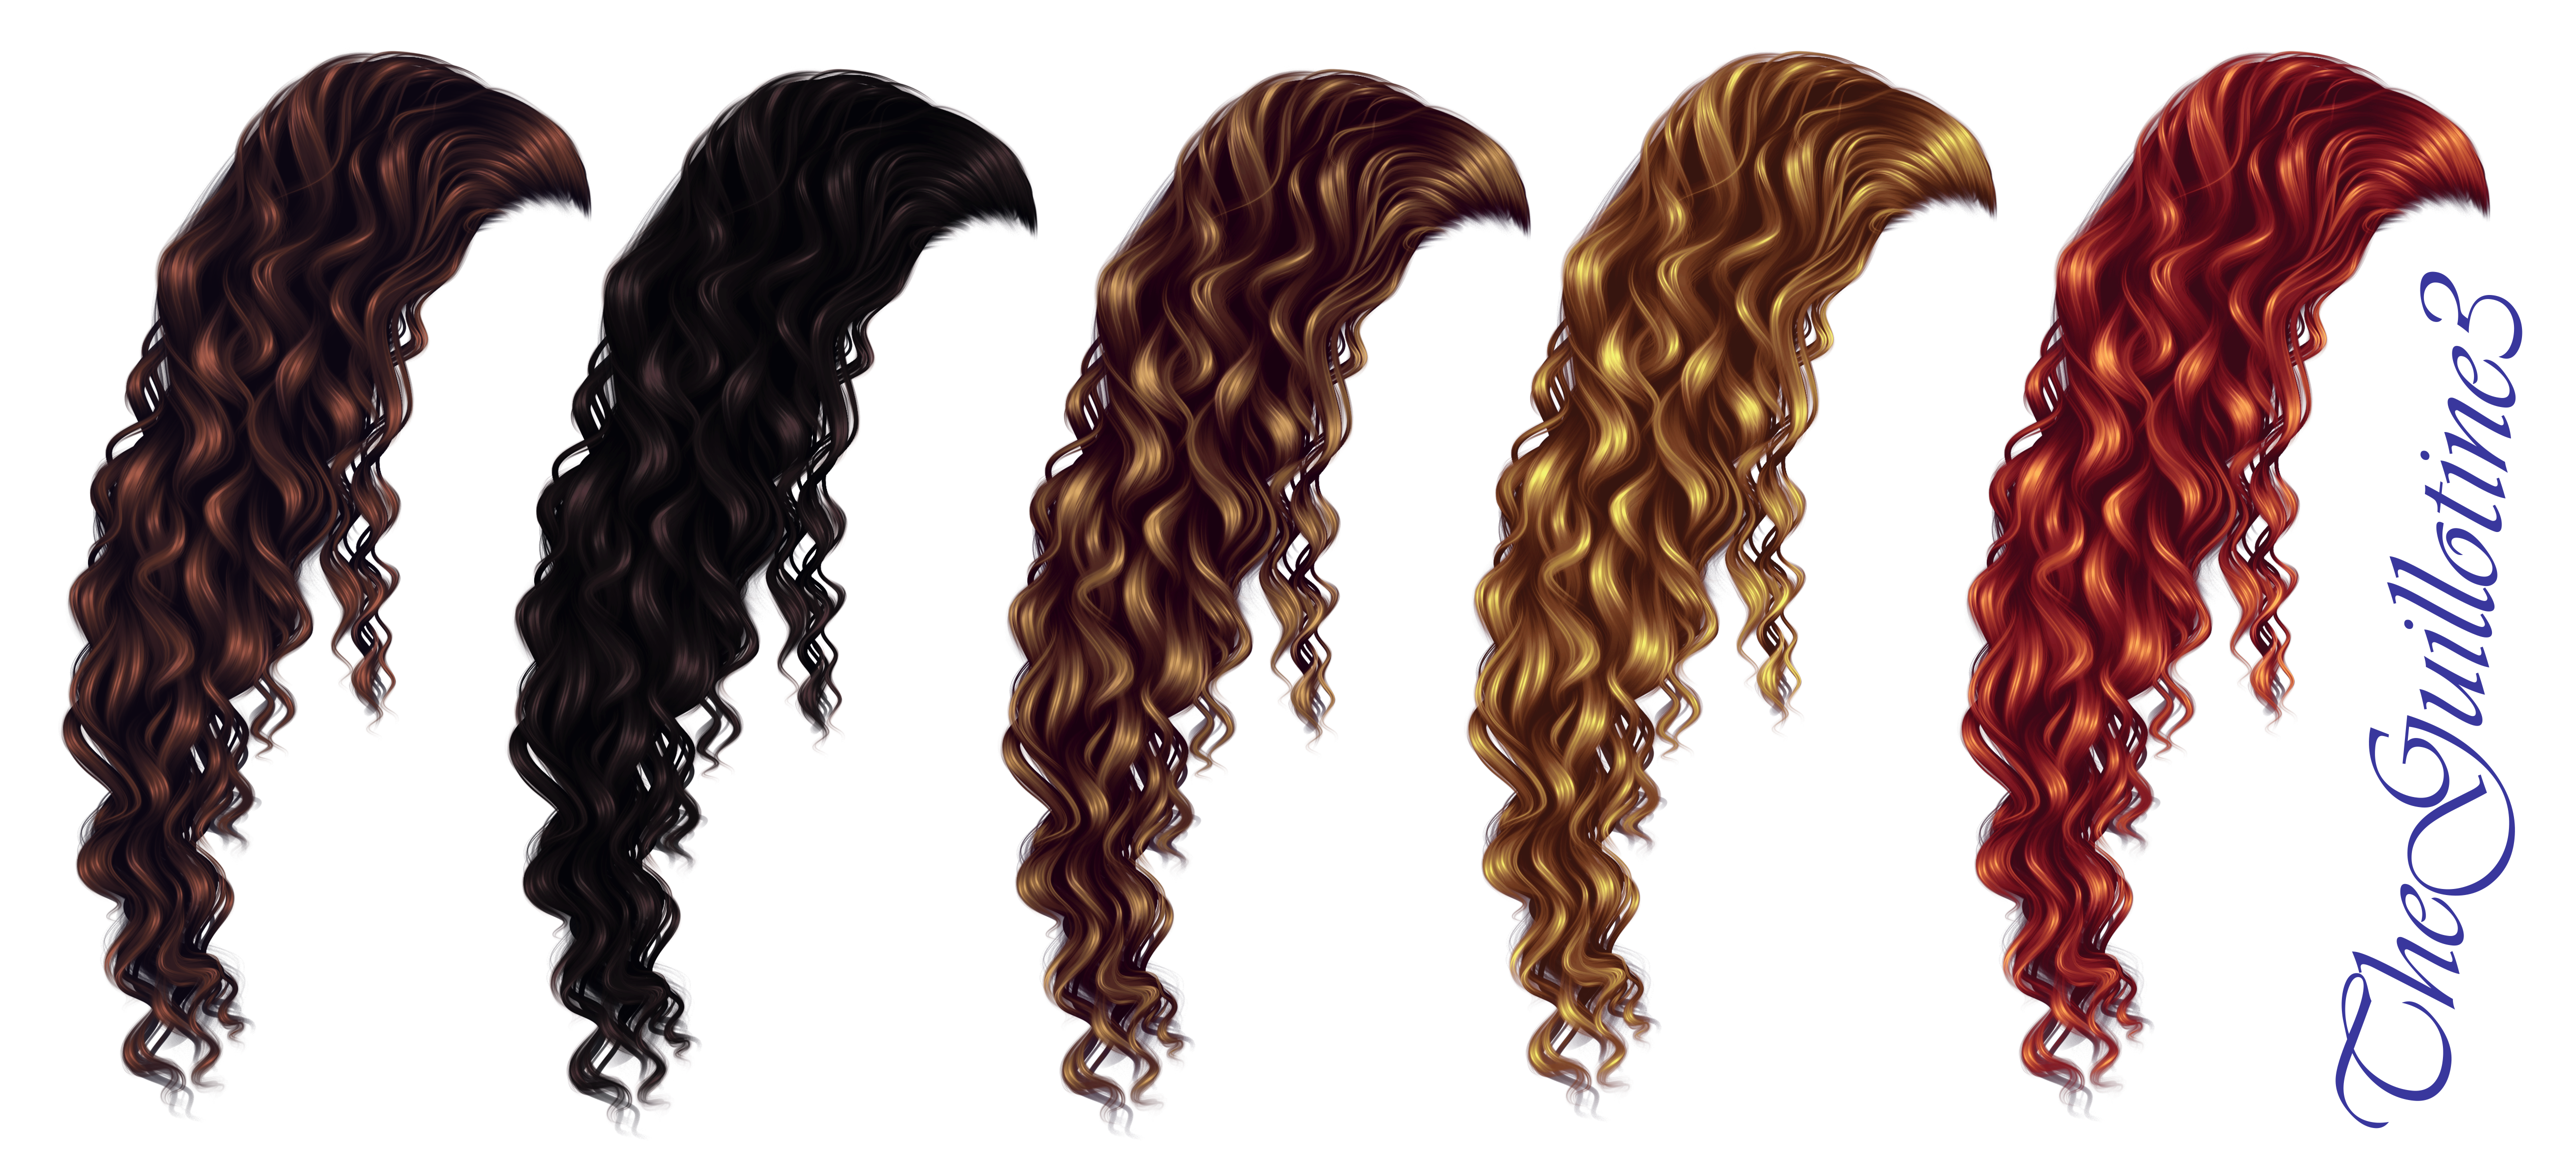 Hair clipart curly hair wig Curly DeviantArt by by by